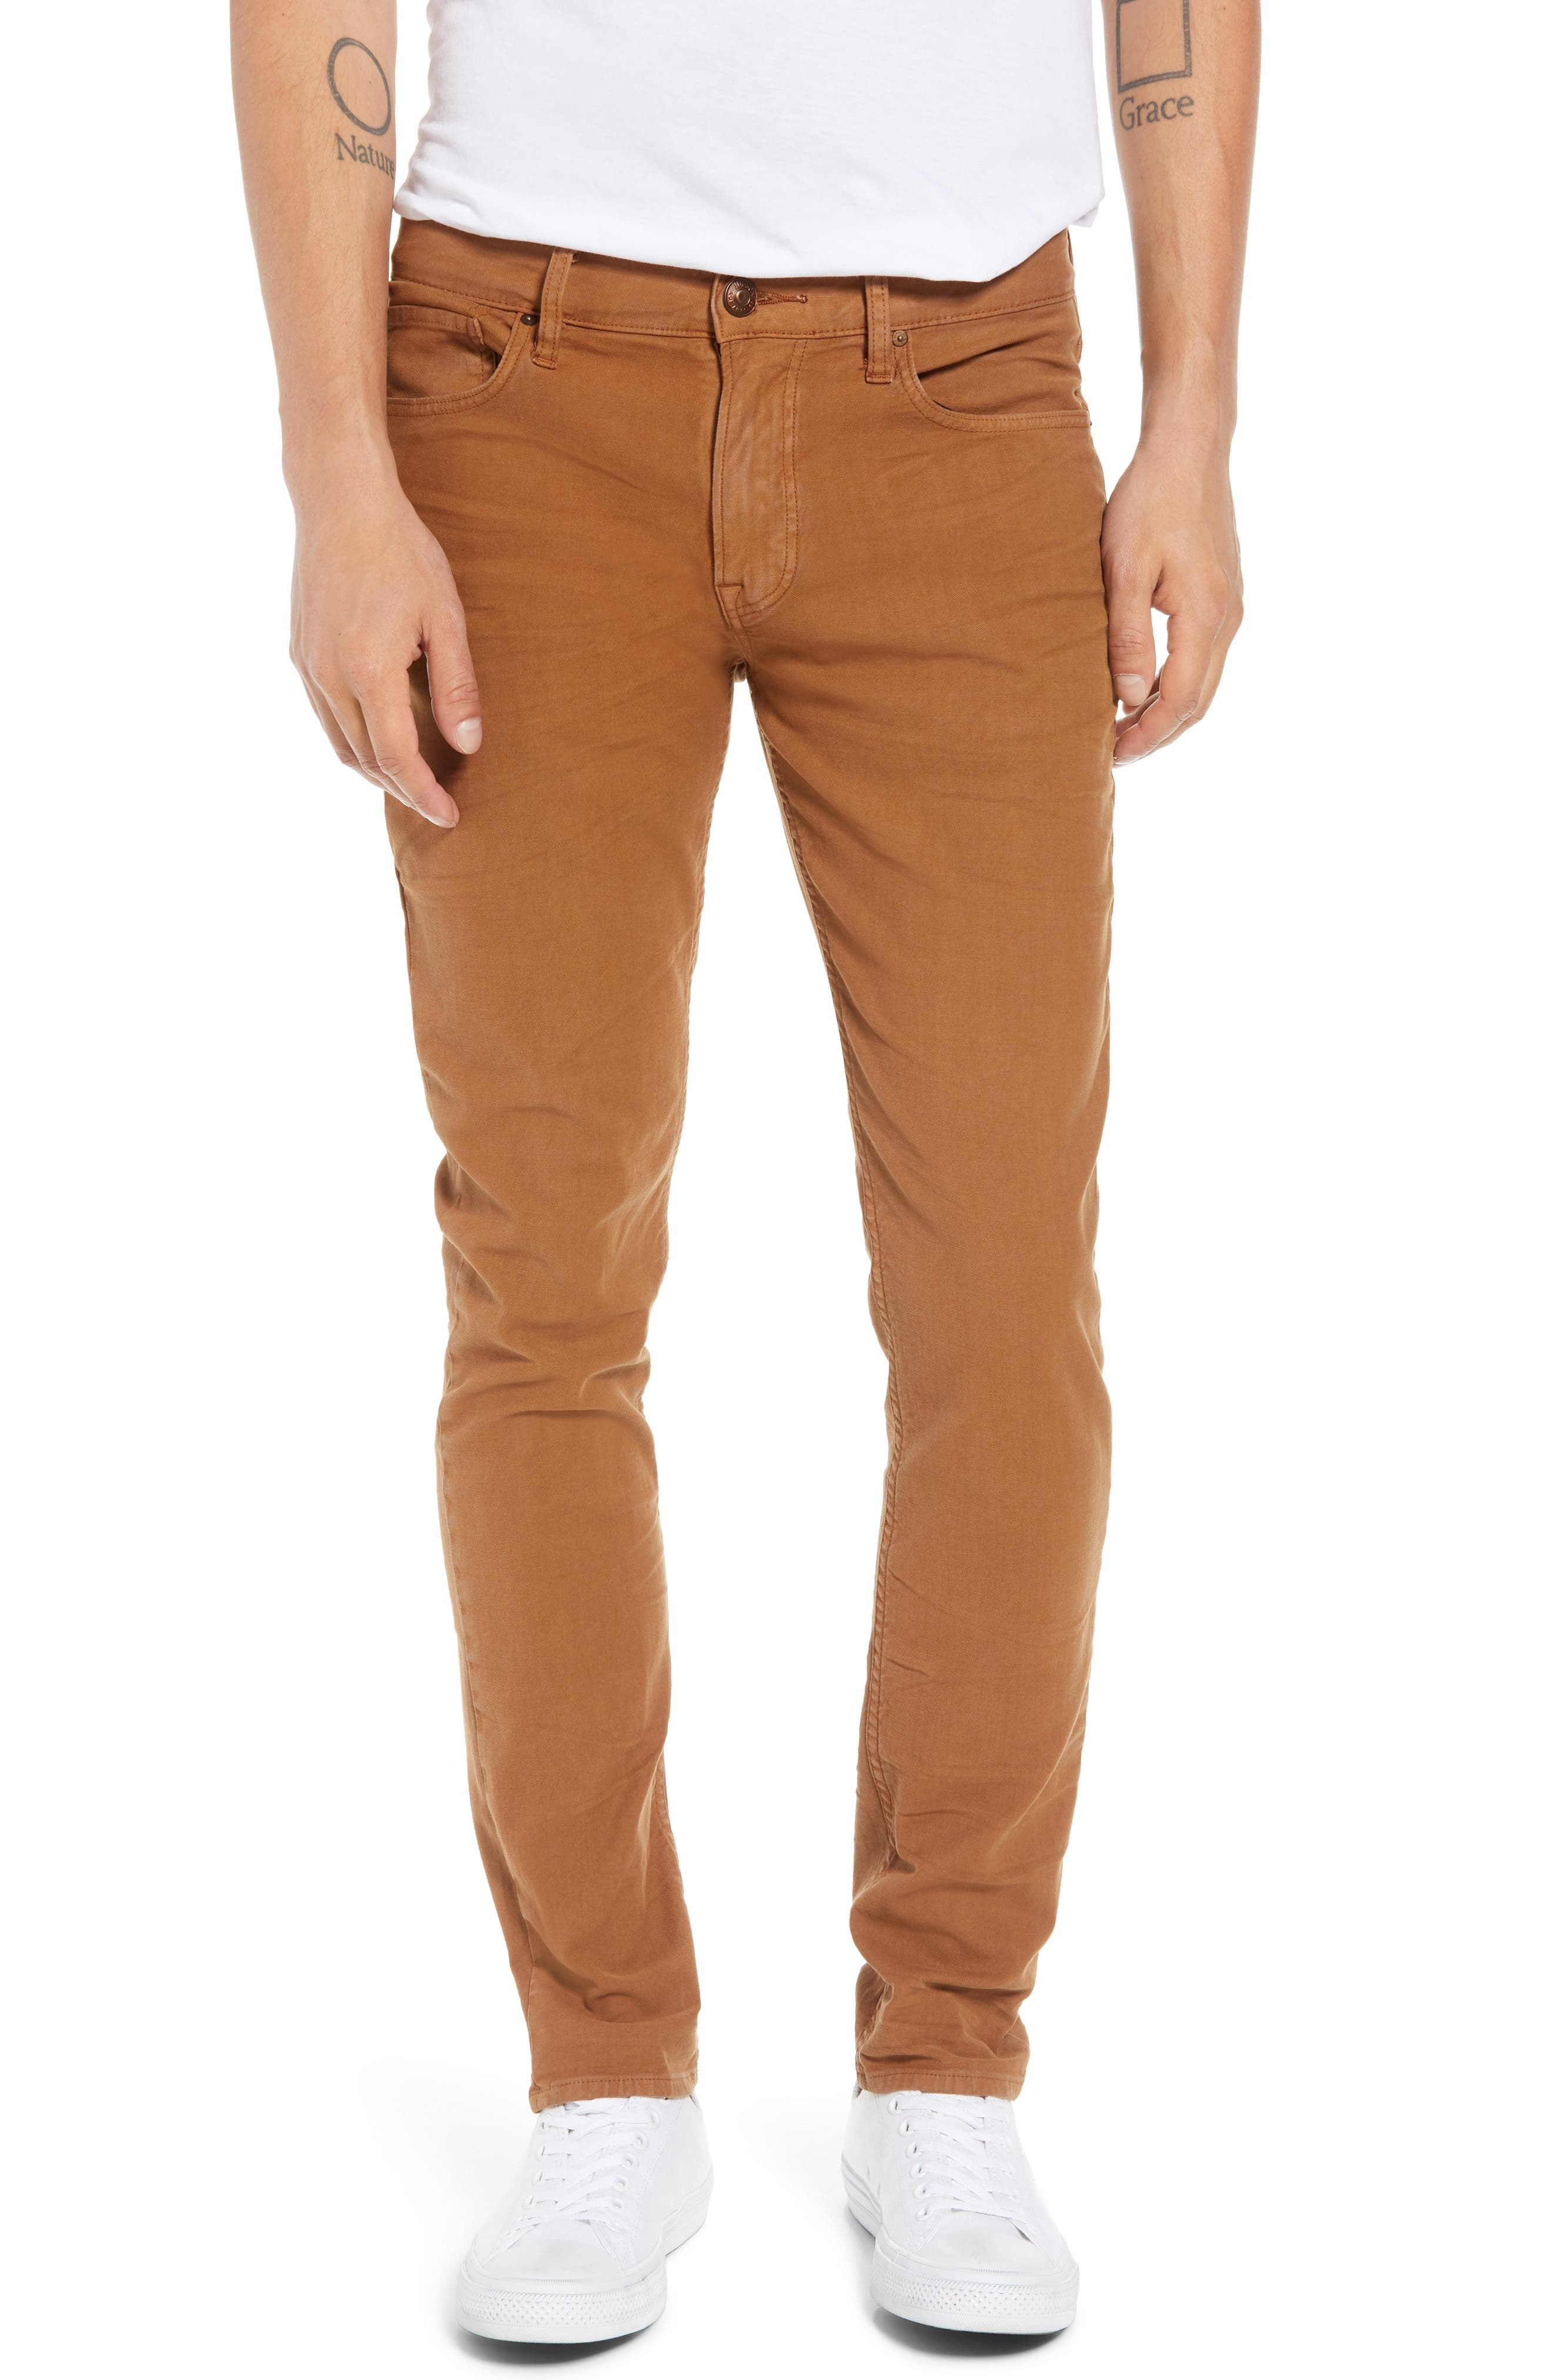 Axl Skinny Fit Jeans,                         Main,                         color, SIENNA